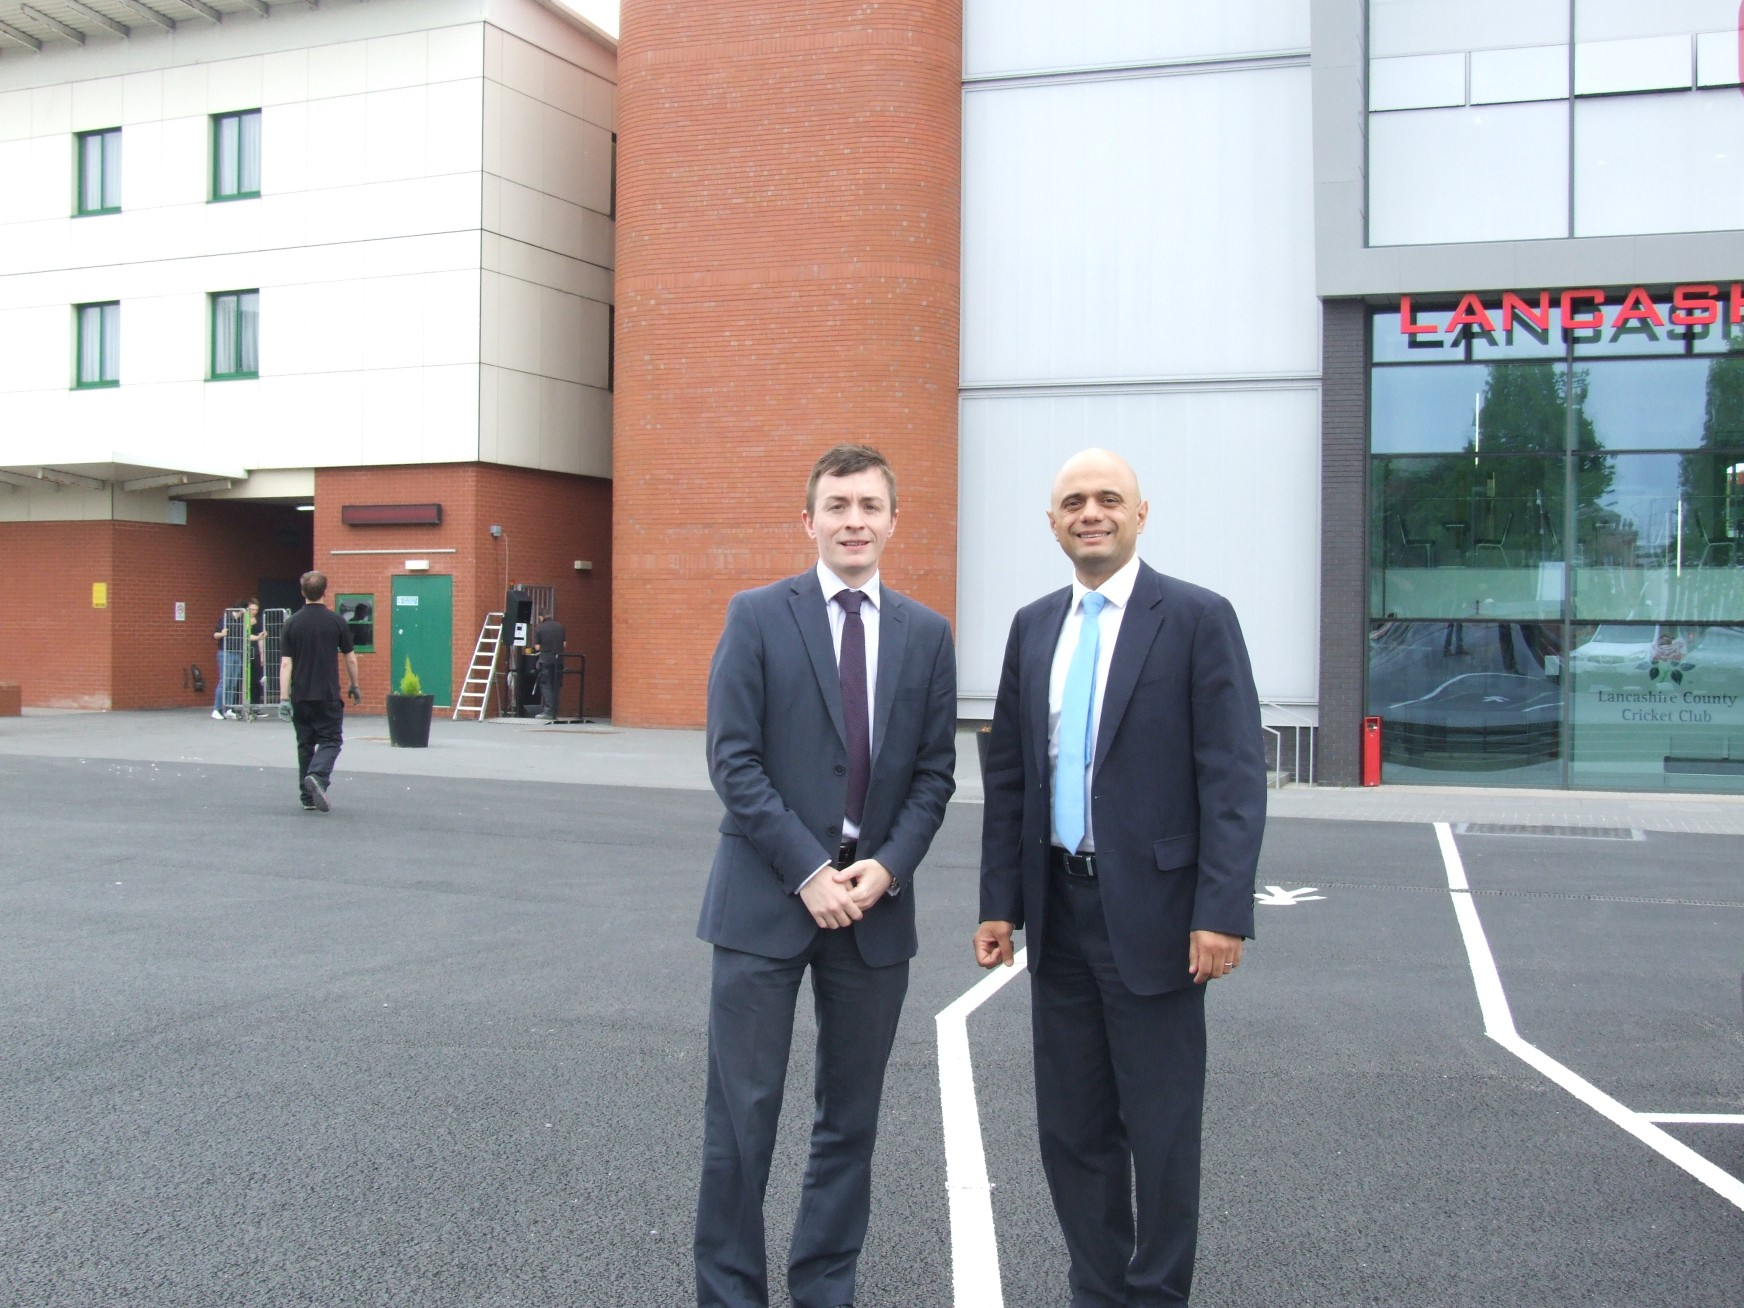 Minister for Culture, Media and Sport visits LCC's Old Trafford ground